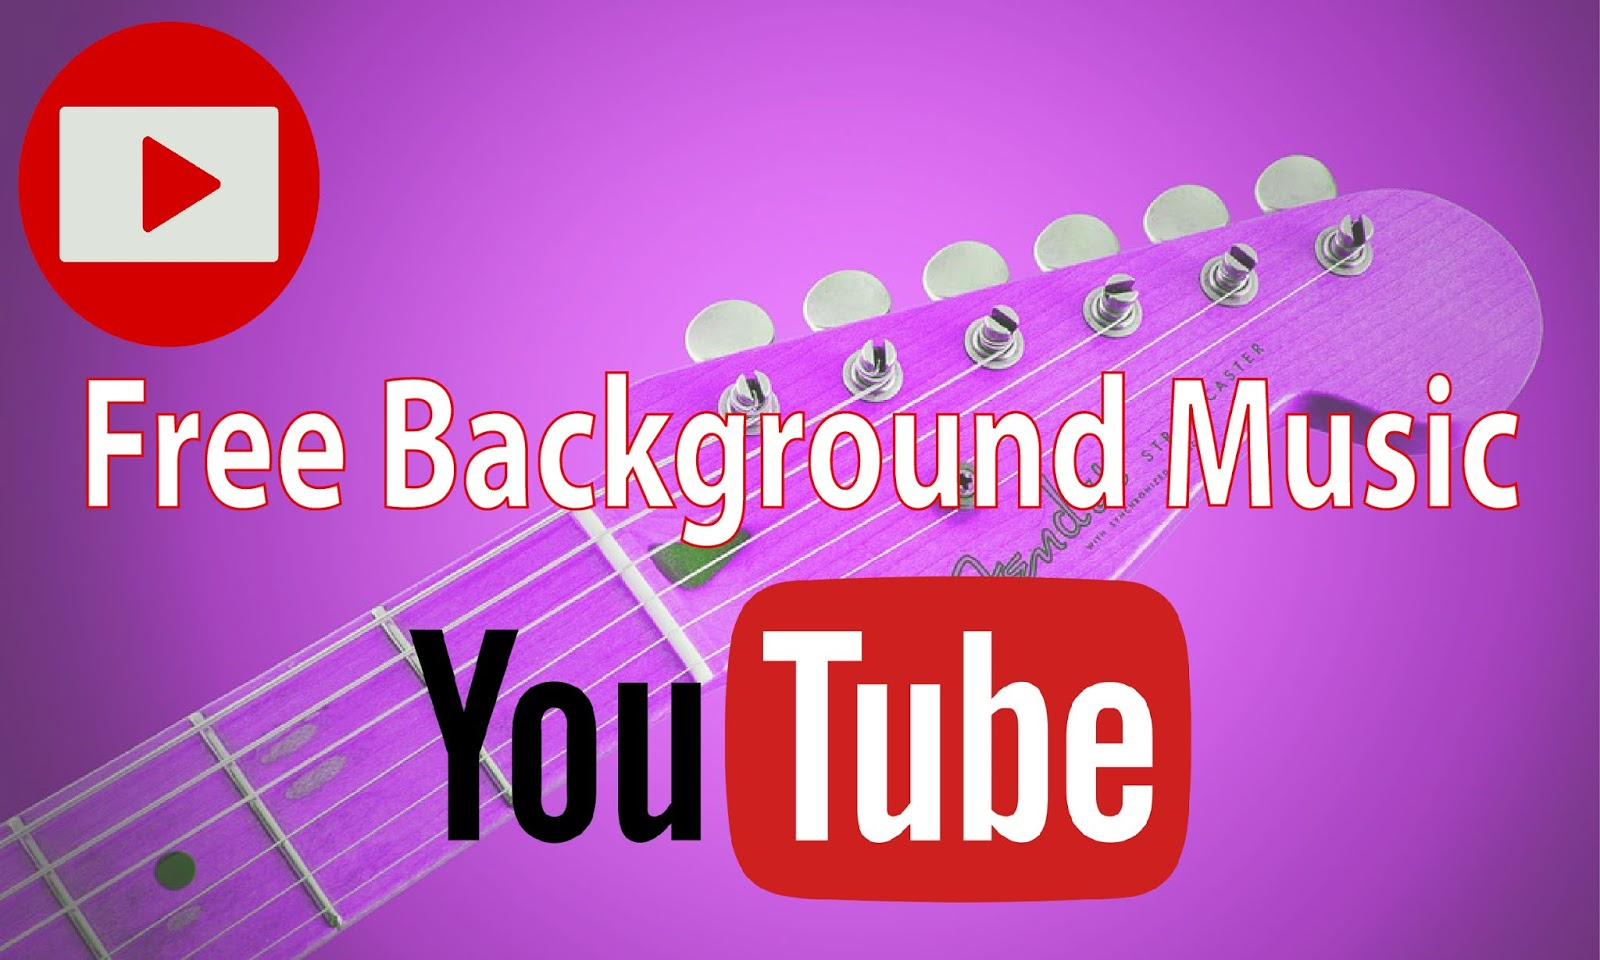 Free Background Music for Youtube Video - Online Workplace